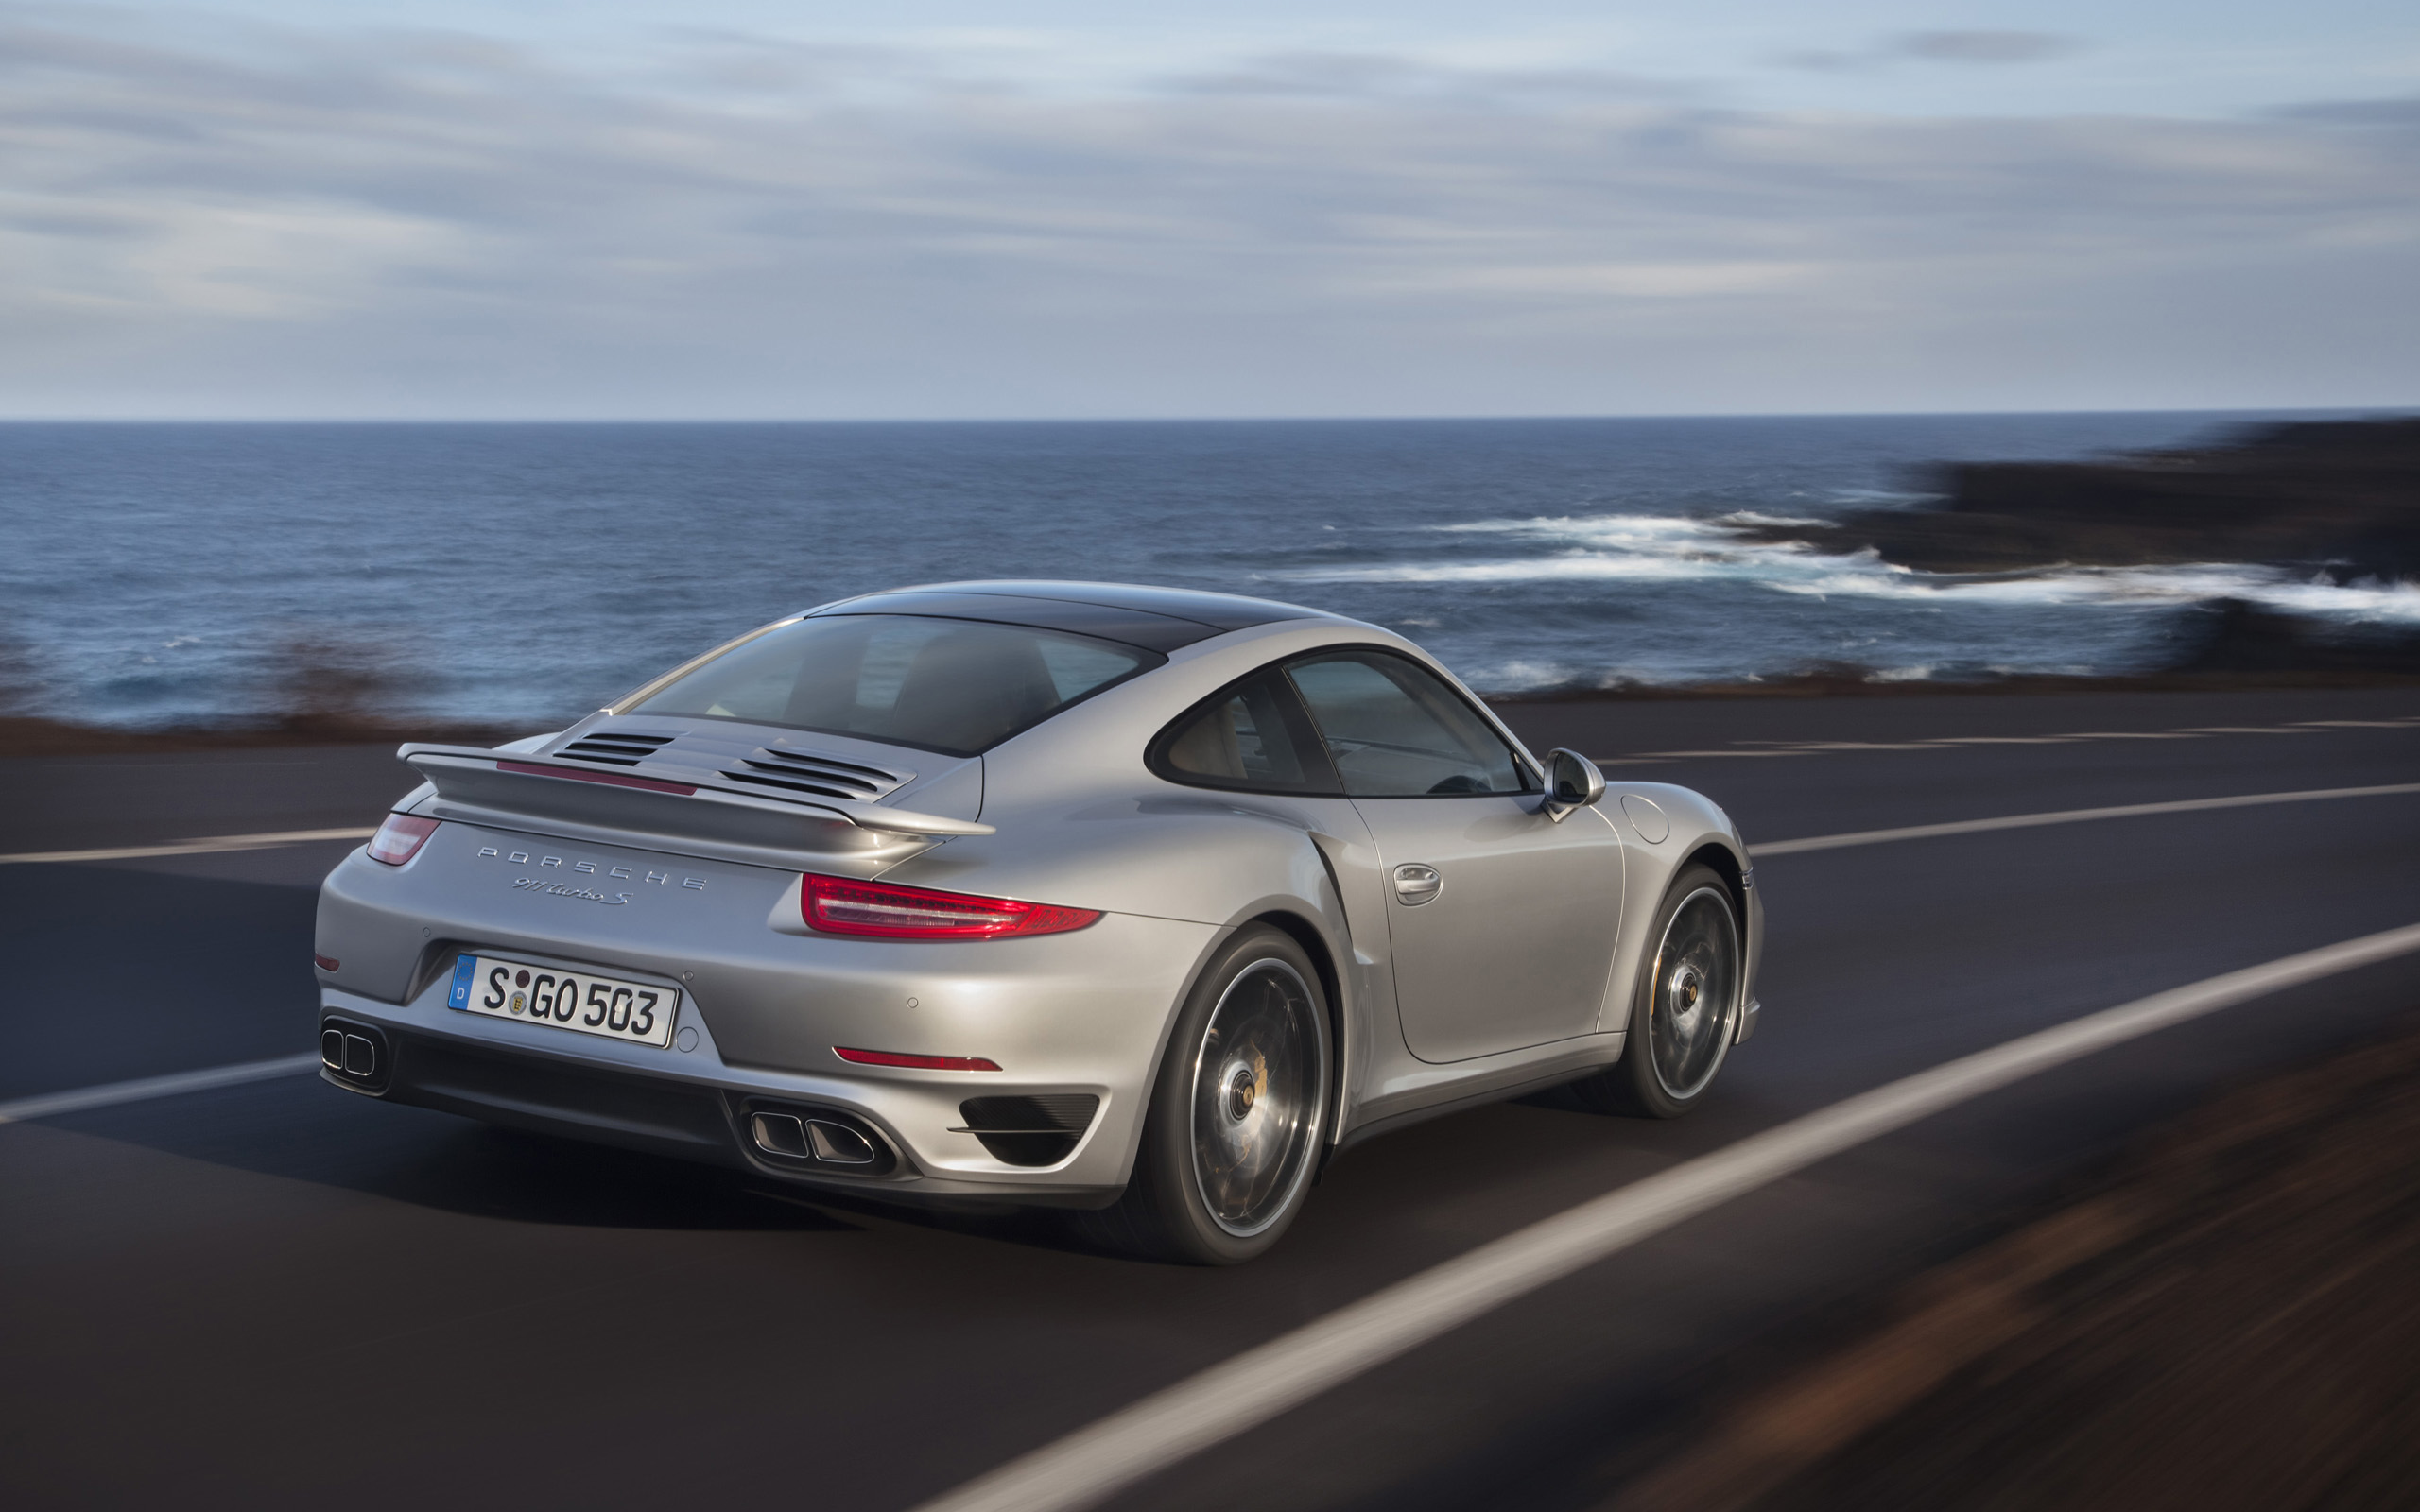 2013 porsche 911 turbo motion rear wallpapers and stock photos